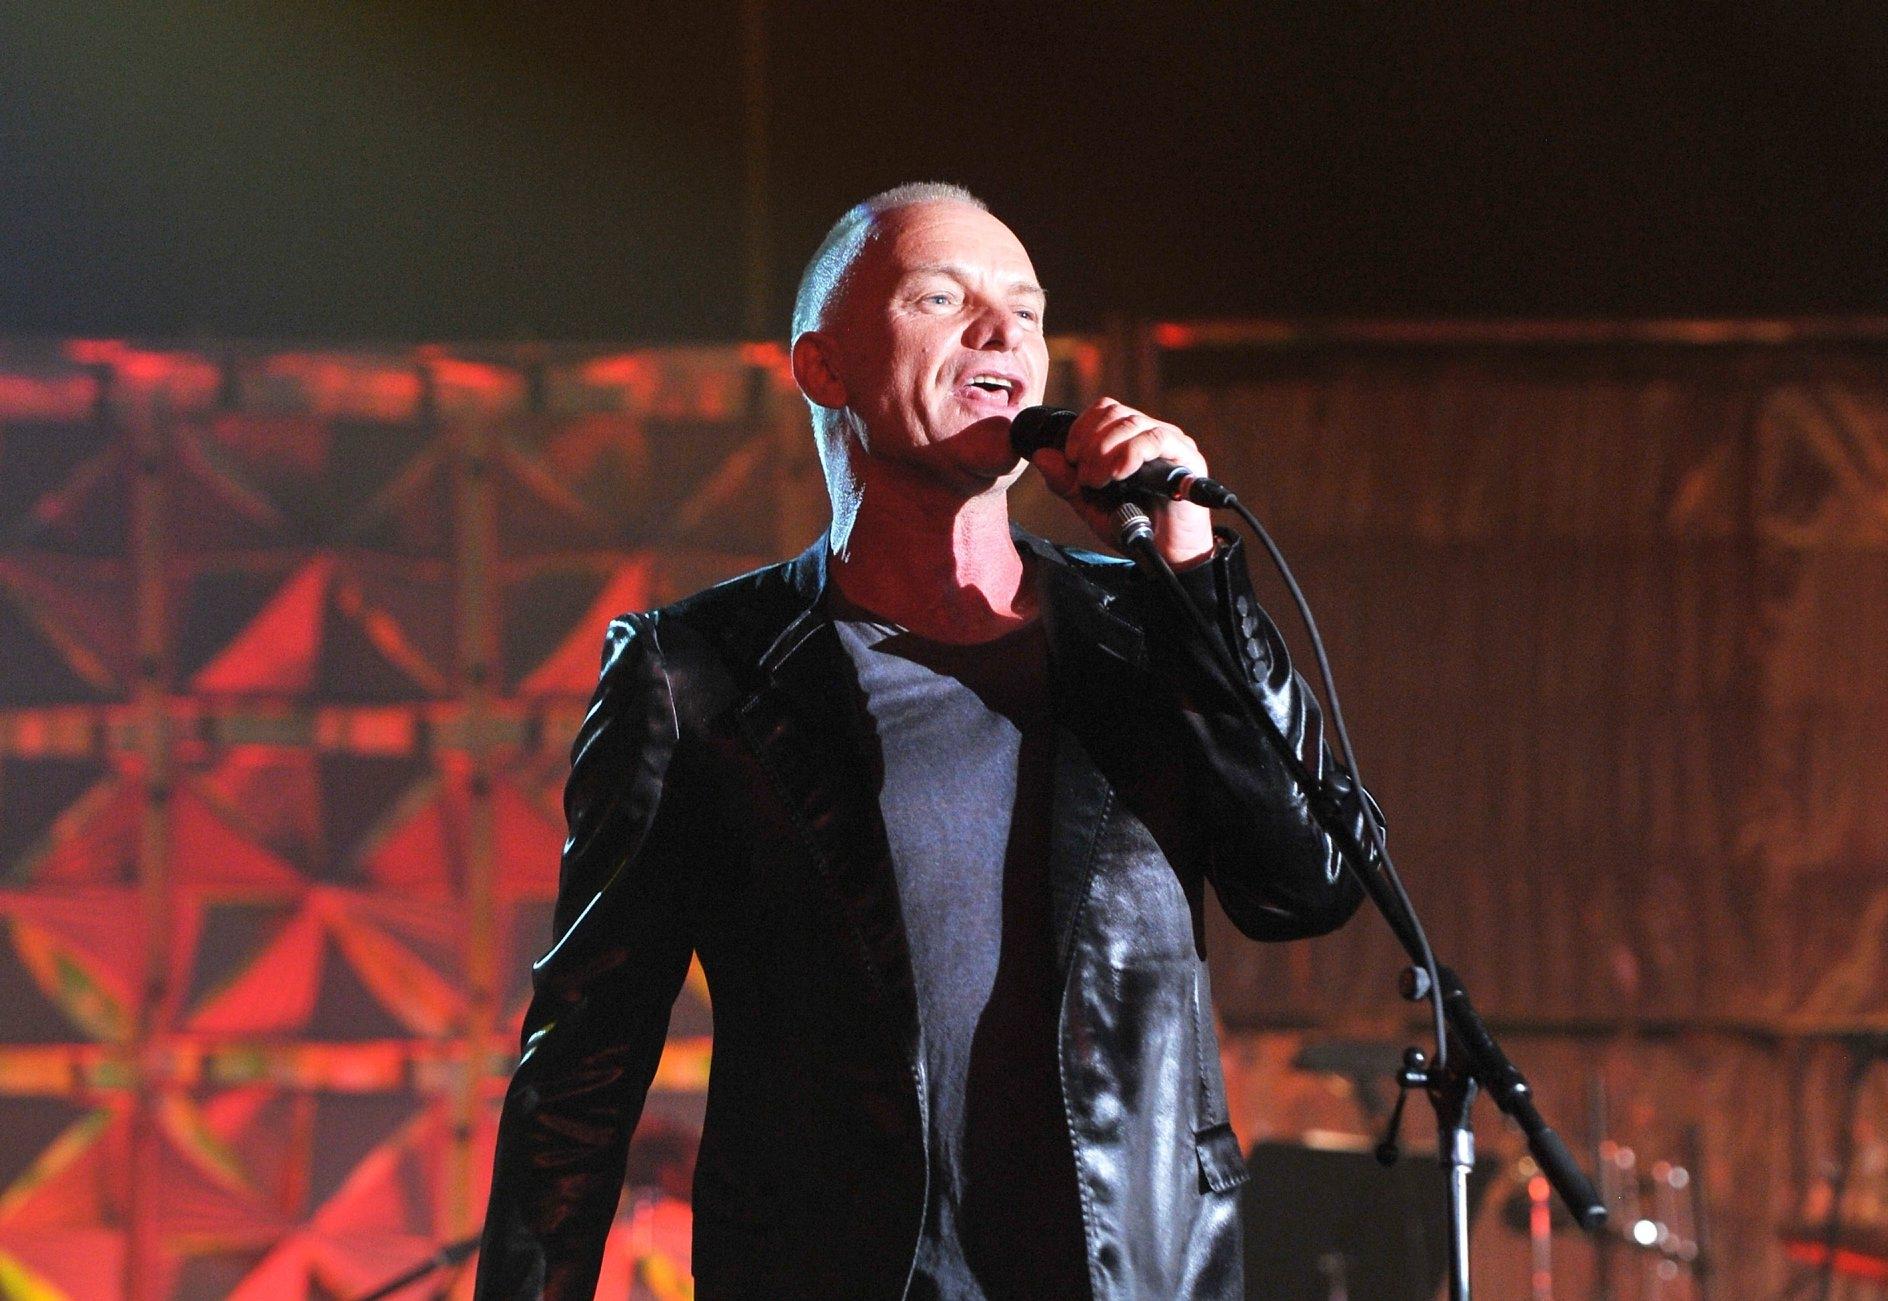 NEW YORK, NY - JUNE 13:  Sting performs onstage at the Songwriters Hall of Fame 44th Annual Induction and Awards Dinner at the New York Marriott Marquis on June 13, 2013 in New York City.  (Photo by Larry Busacca/Getty Images for Songwriters Hall Of Fame)